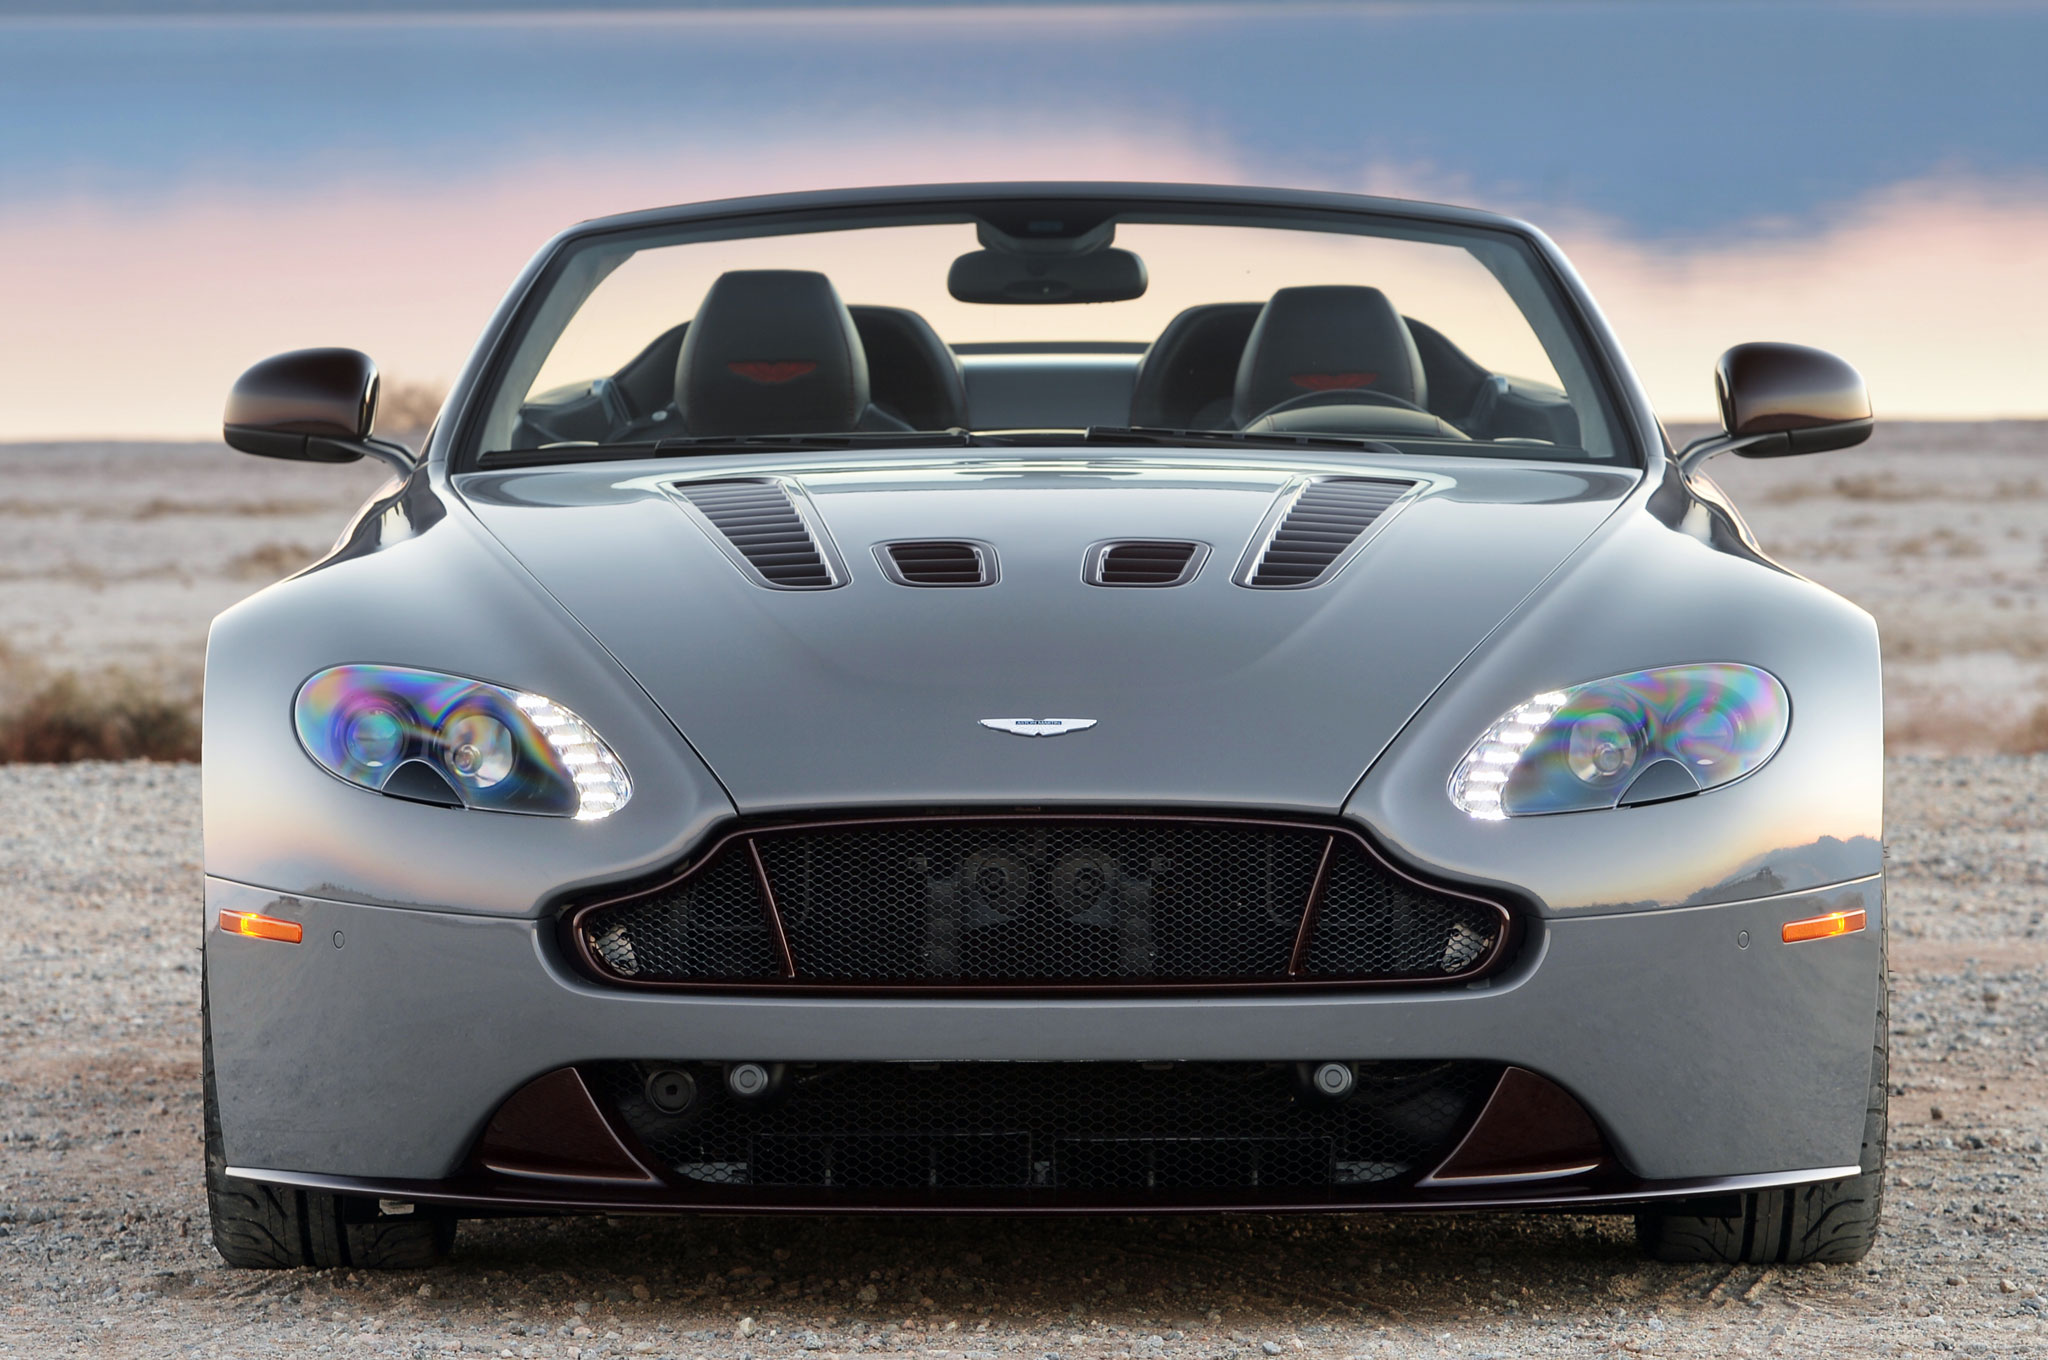 Watch The 2017 Aston Martin V12 Vantage S Attempt 205 Mph On Ignition